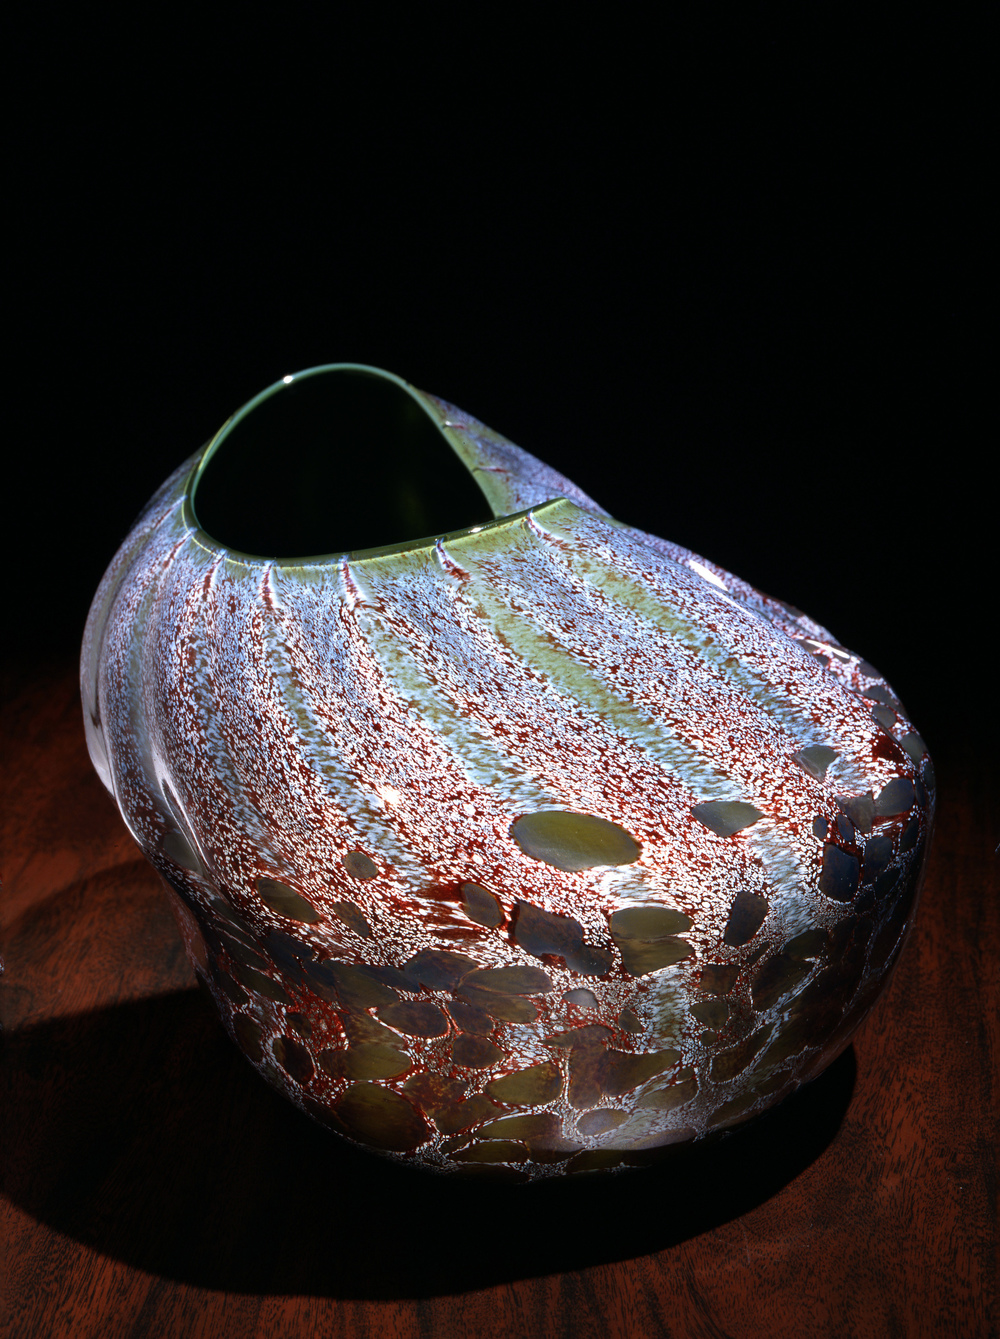 Dale Chihuly,  Emerald Ridged and Oxblood Macchia  (1981, glass, 8 x 9 x 9 inches), DC.103